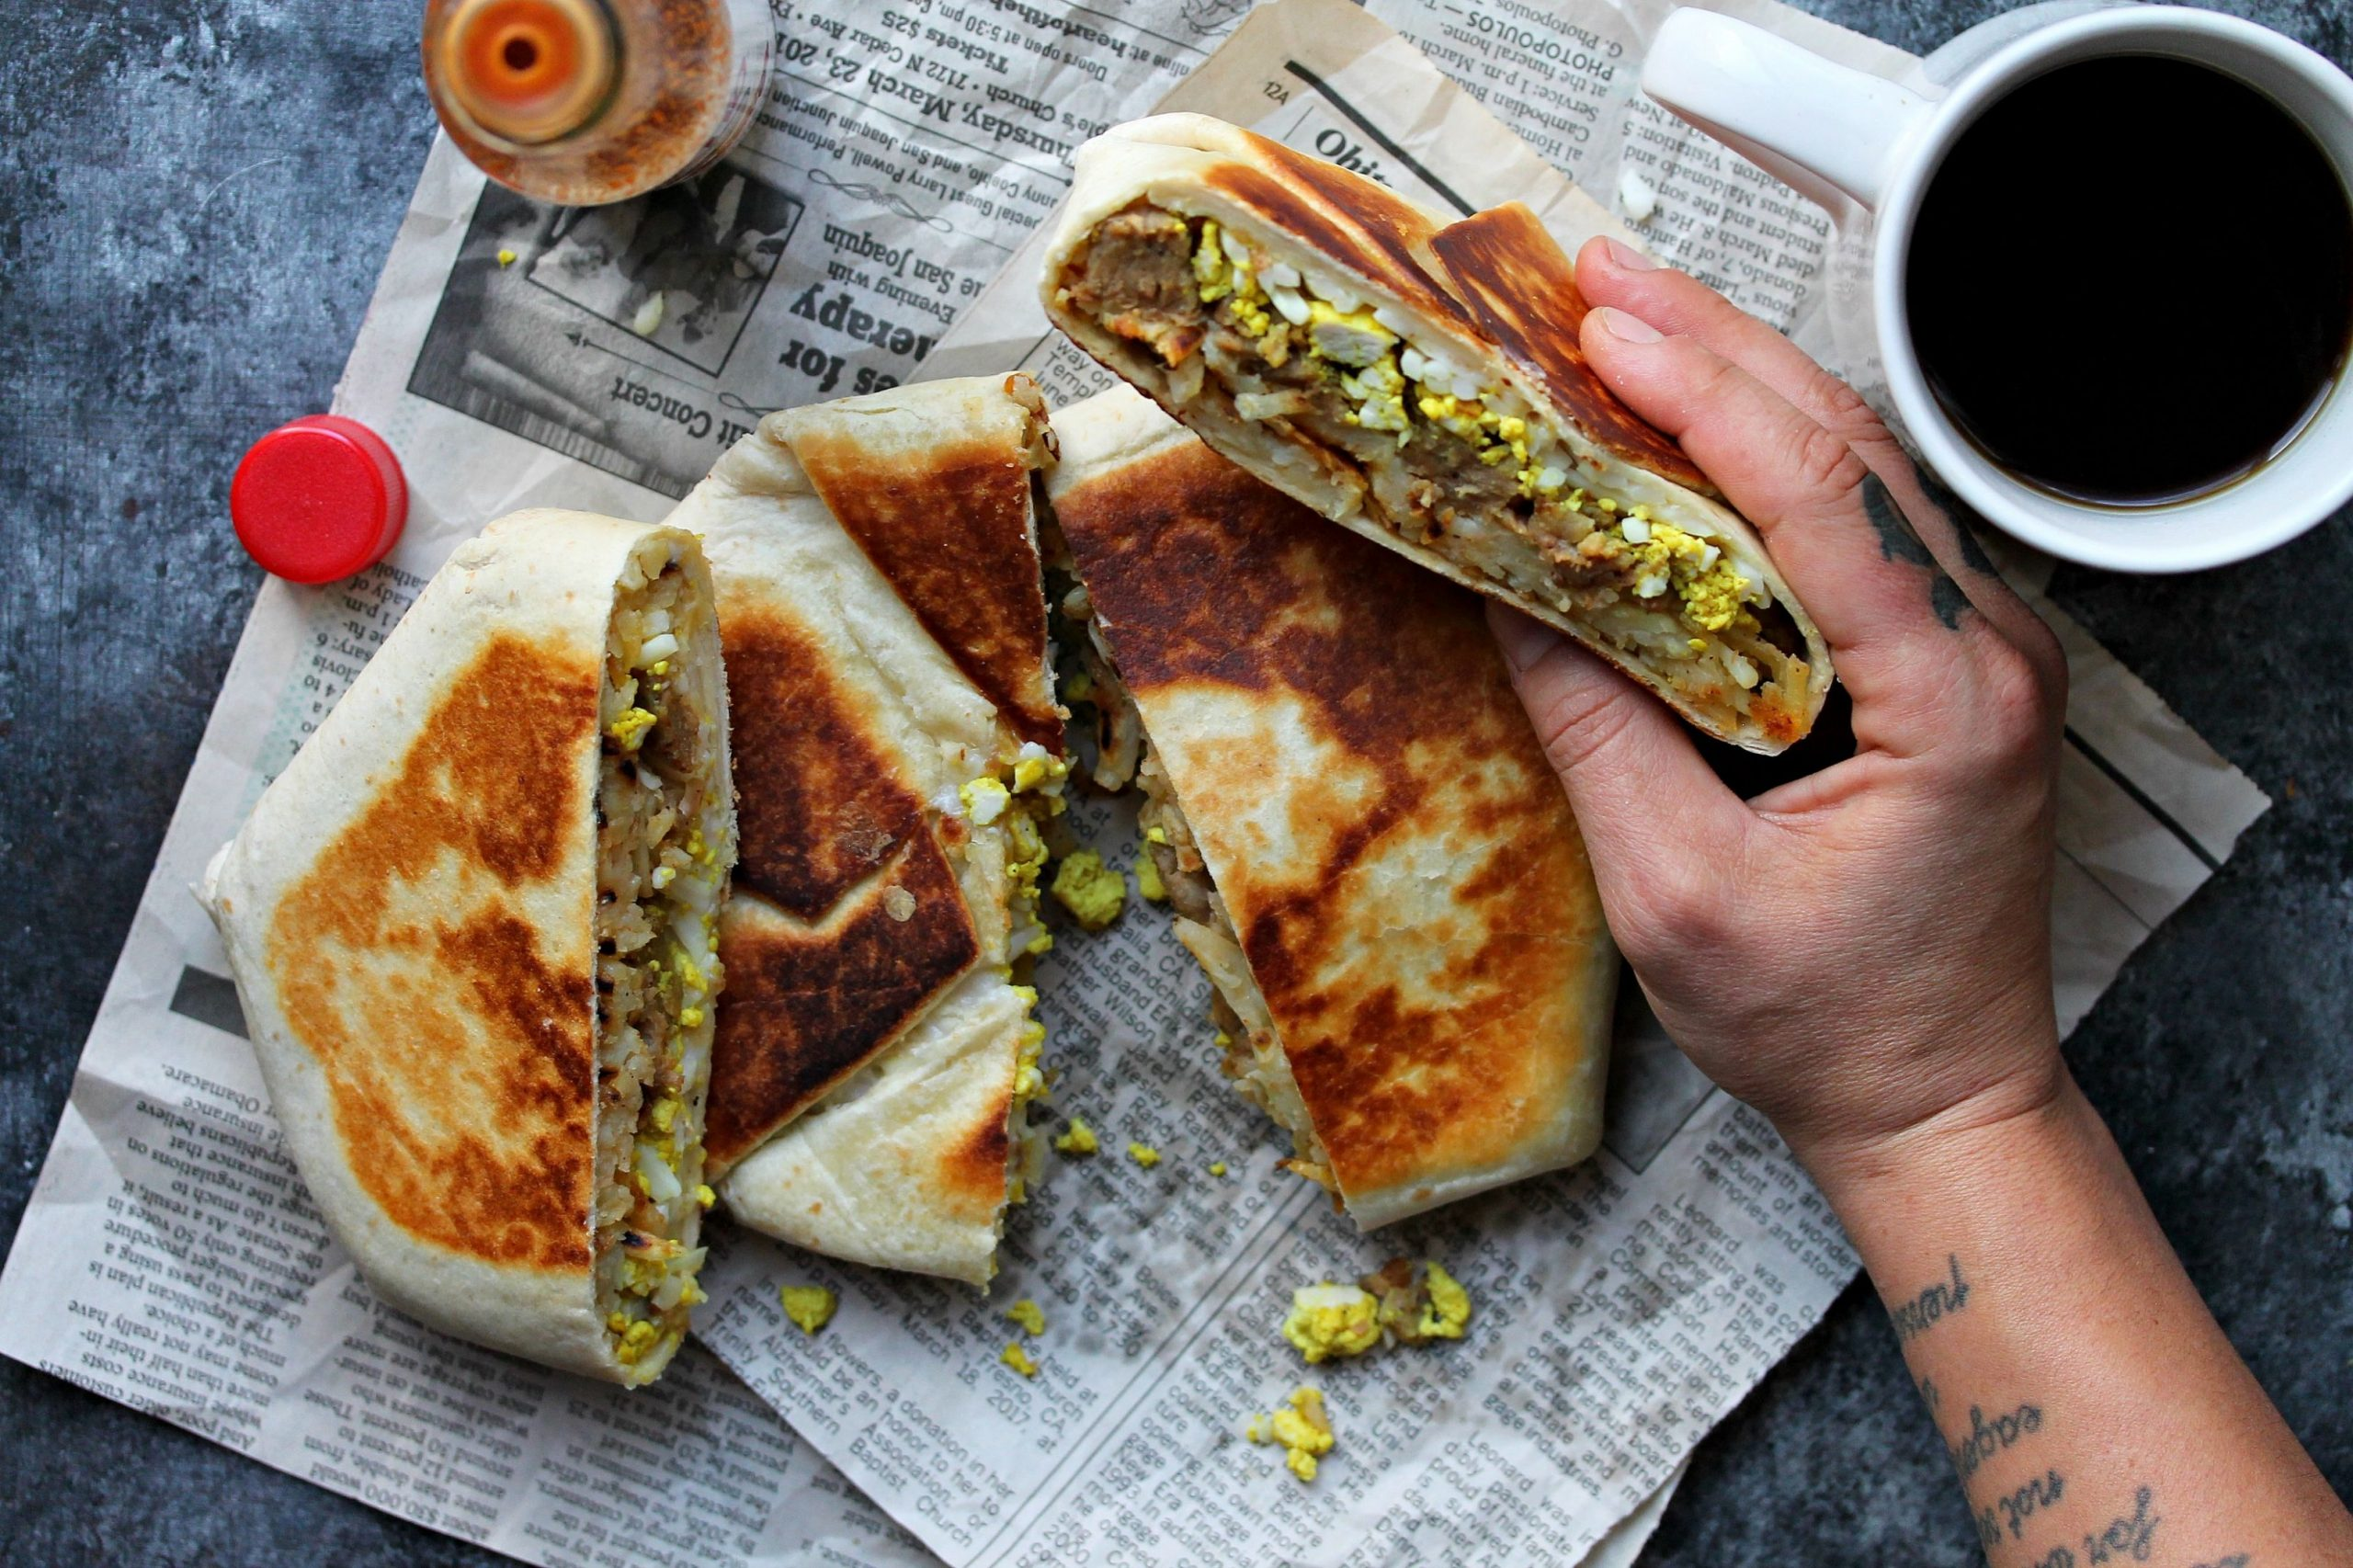 Vegan Breakfast Crunchwrap AKA The Brunchwrap